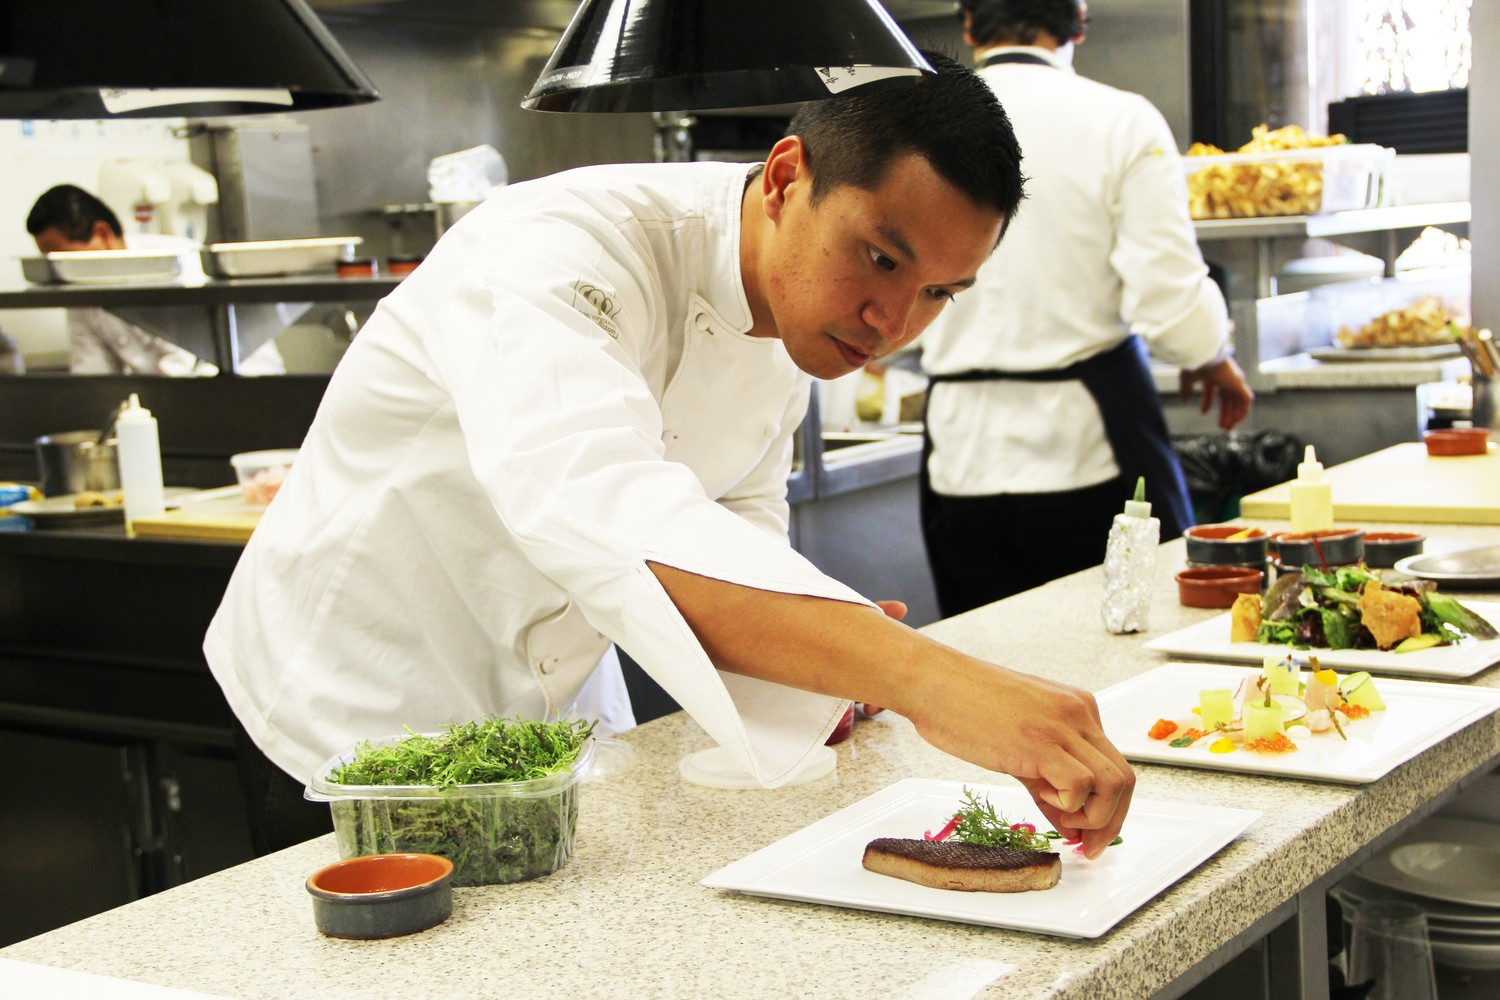 Cooking More than Just Food - Chef's Mental Health — L&L CONSULTING